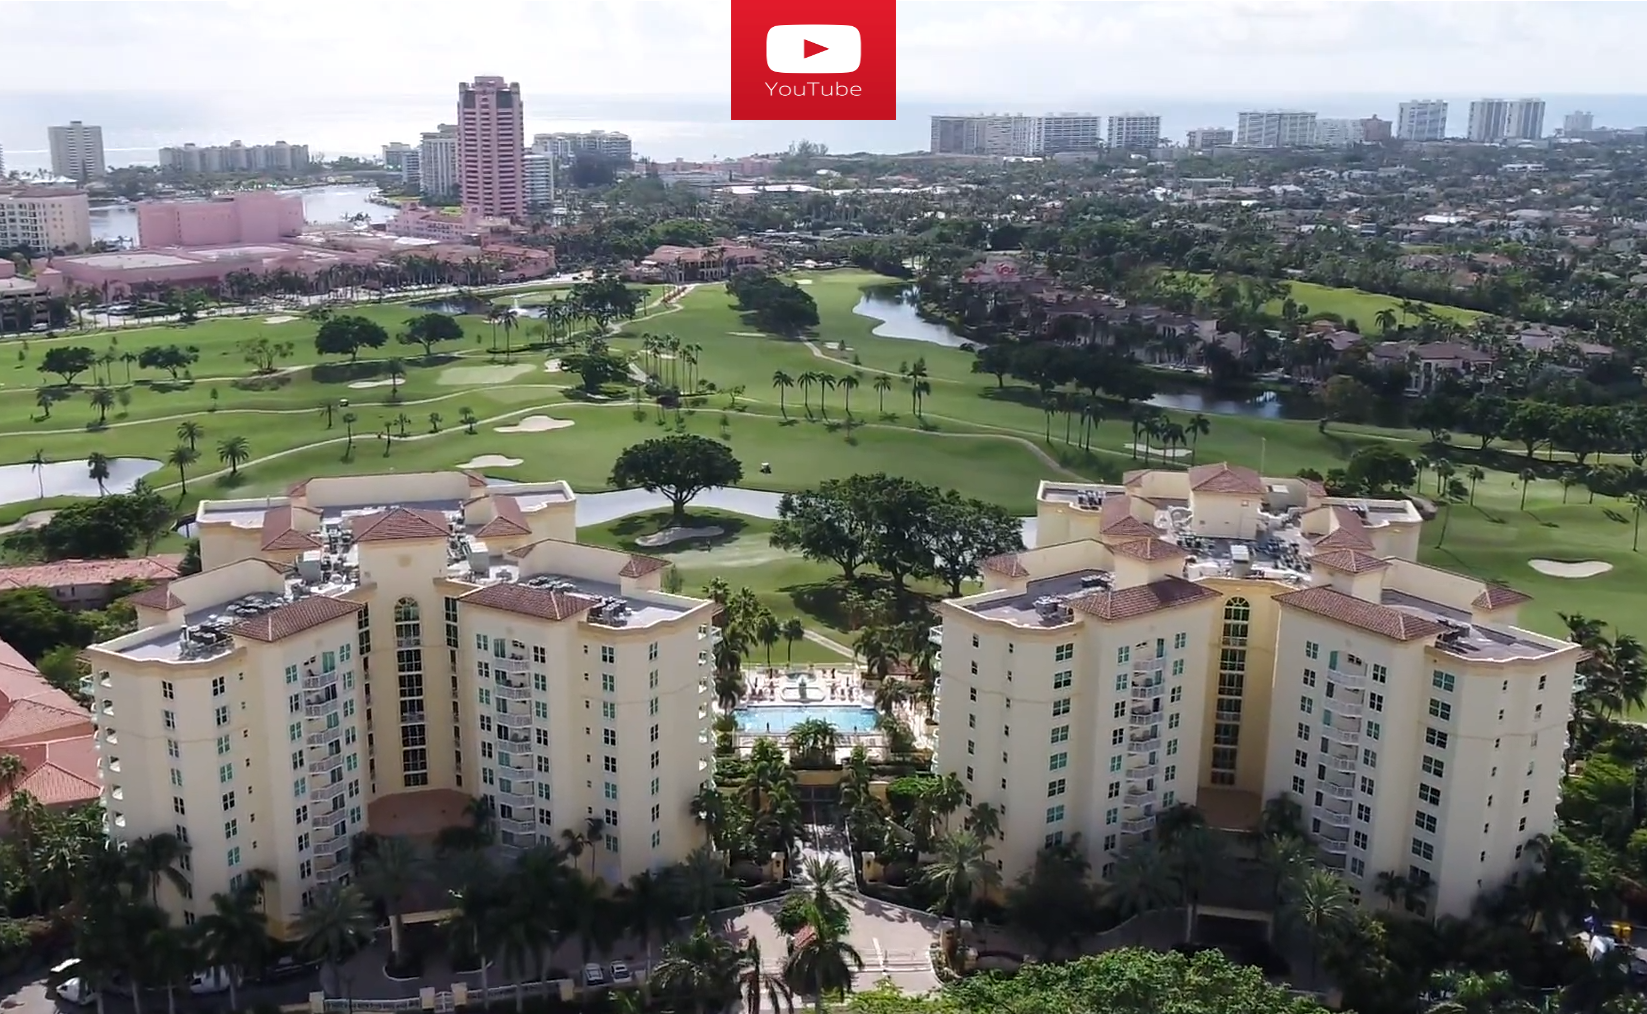 Click the image to see the video of 500-550 SE Mizner Blvd Boca Raton FL 33432 Townsend Place